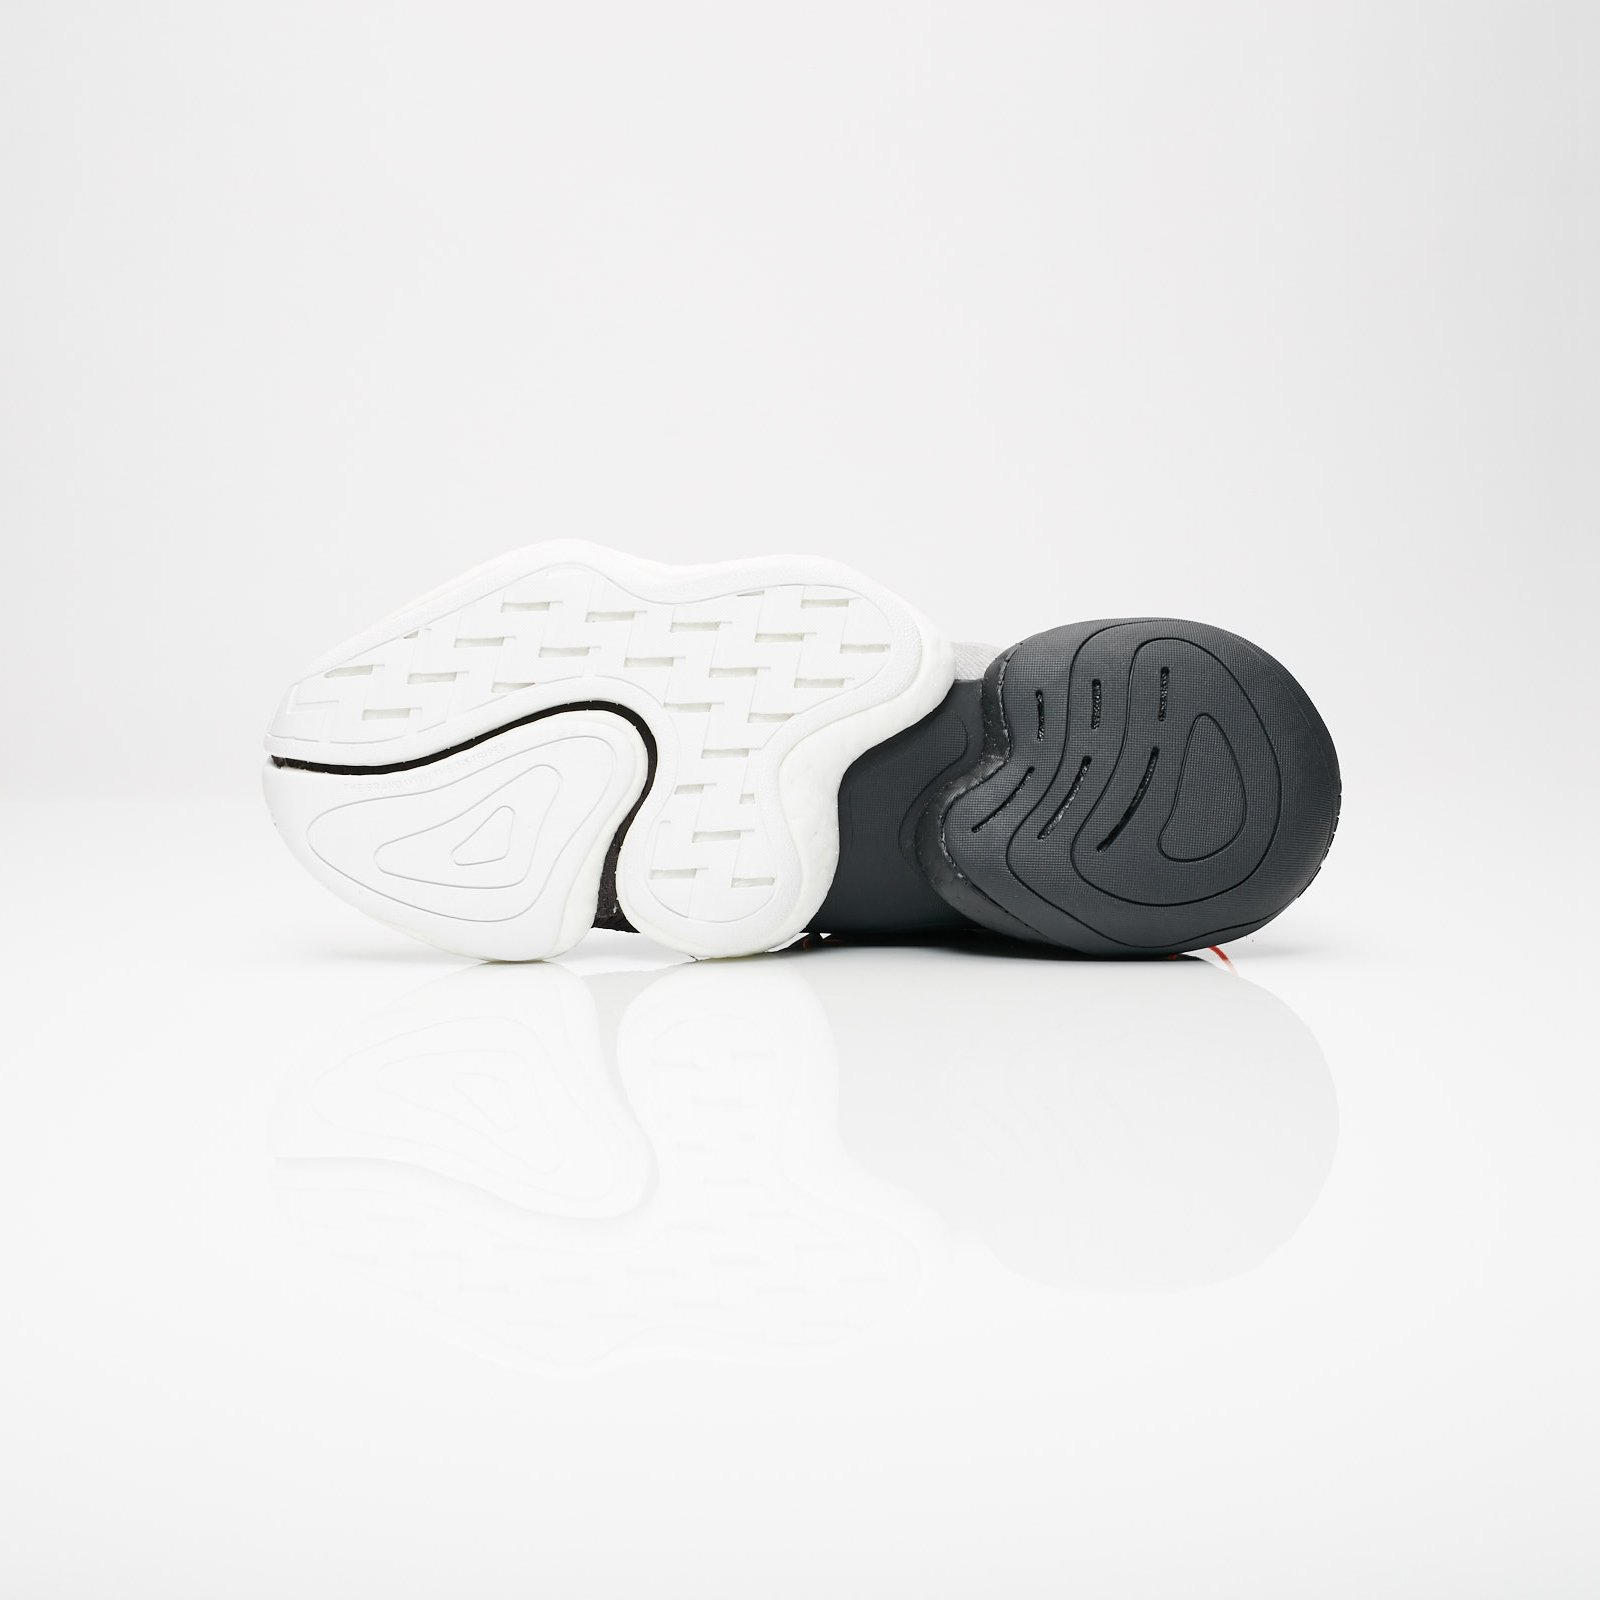 Adidas Crazy BYW LVL me me LVL cq0993 sneakersnstuff Sneakers 2c2931